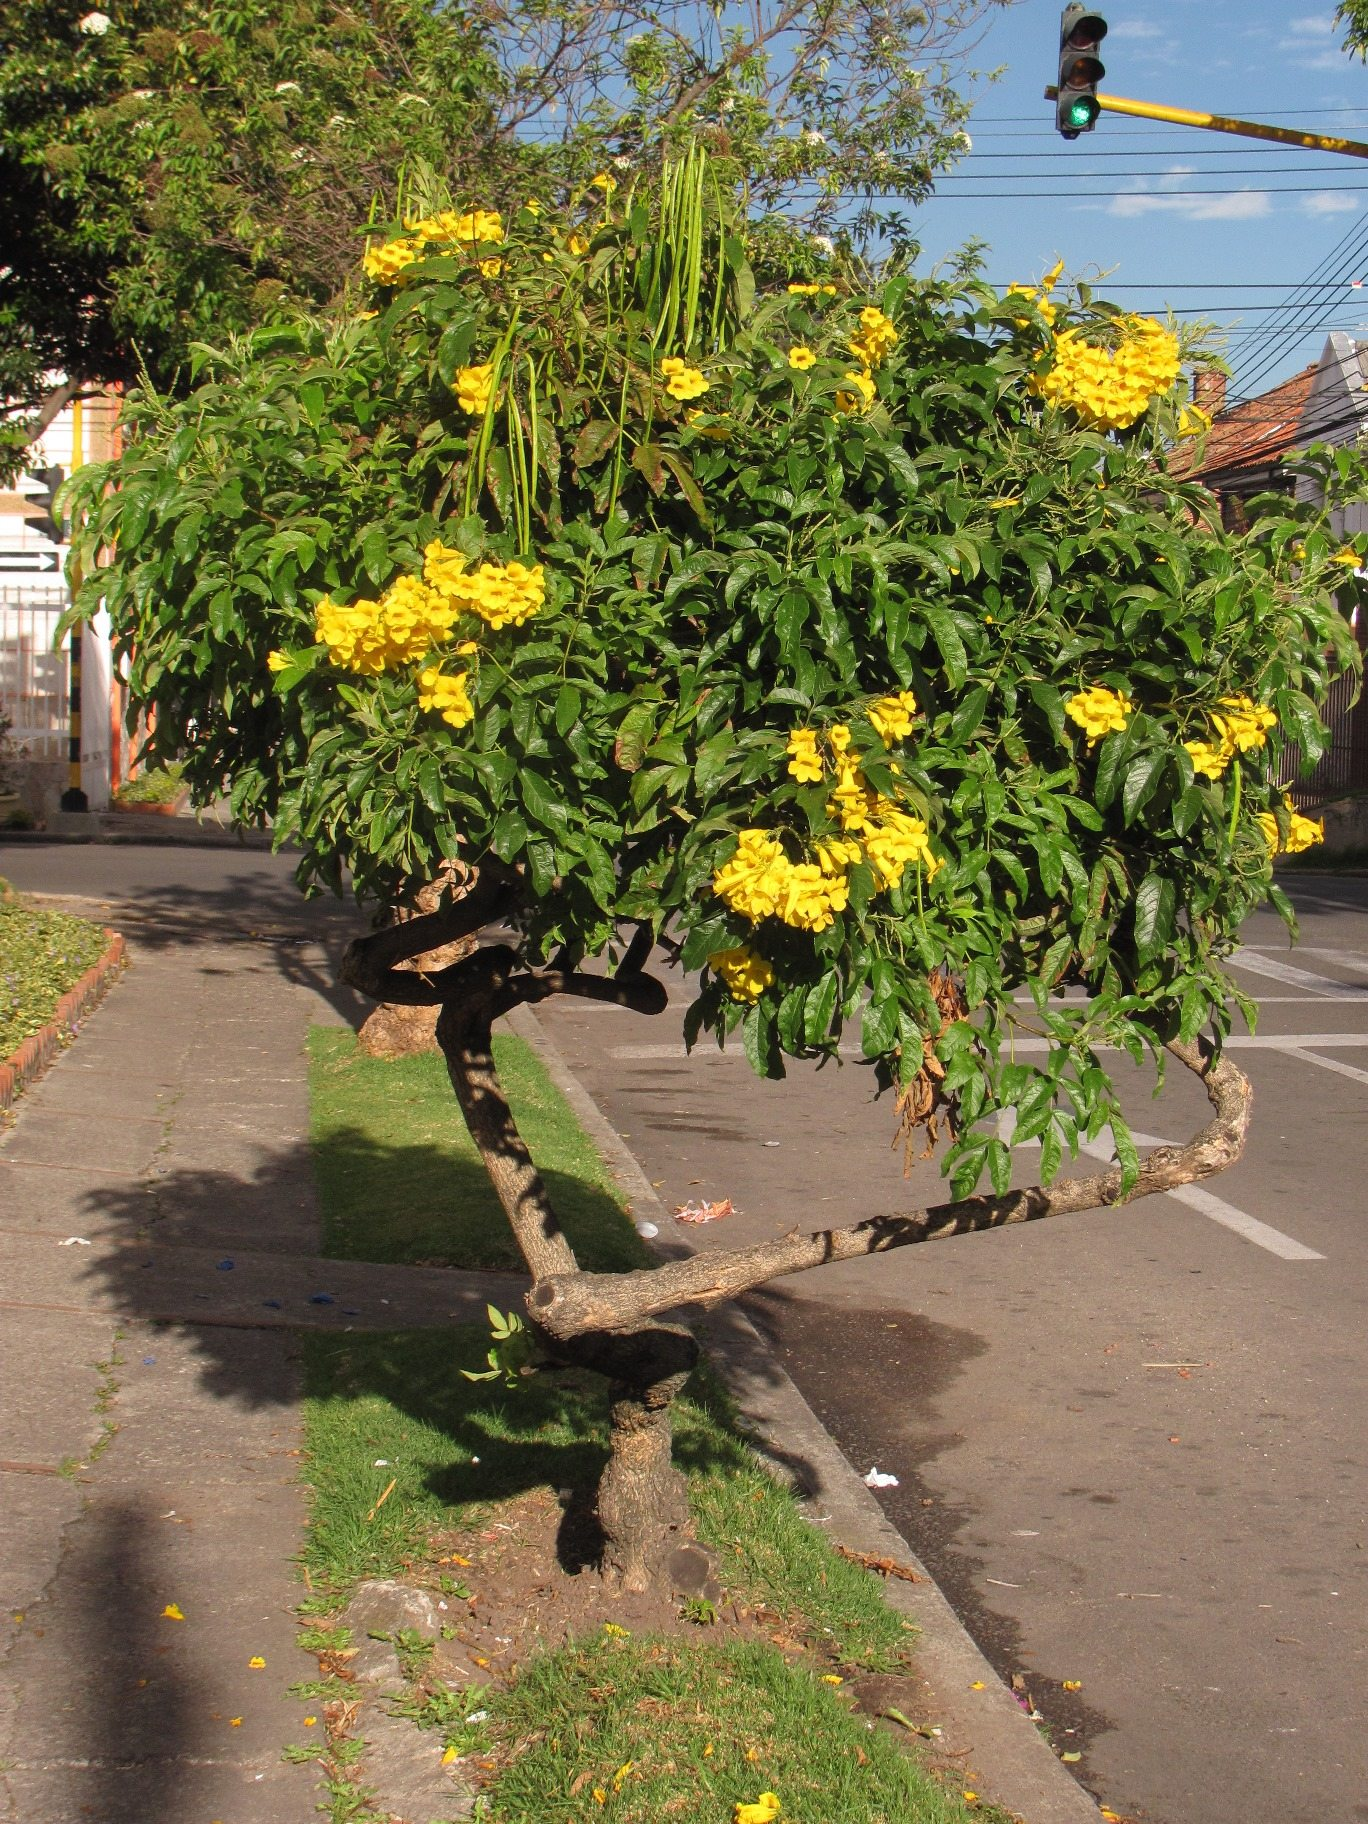 Increasing The Native Plants Of Colombian Cities The Nature Of Cities